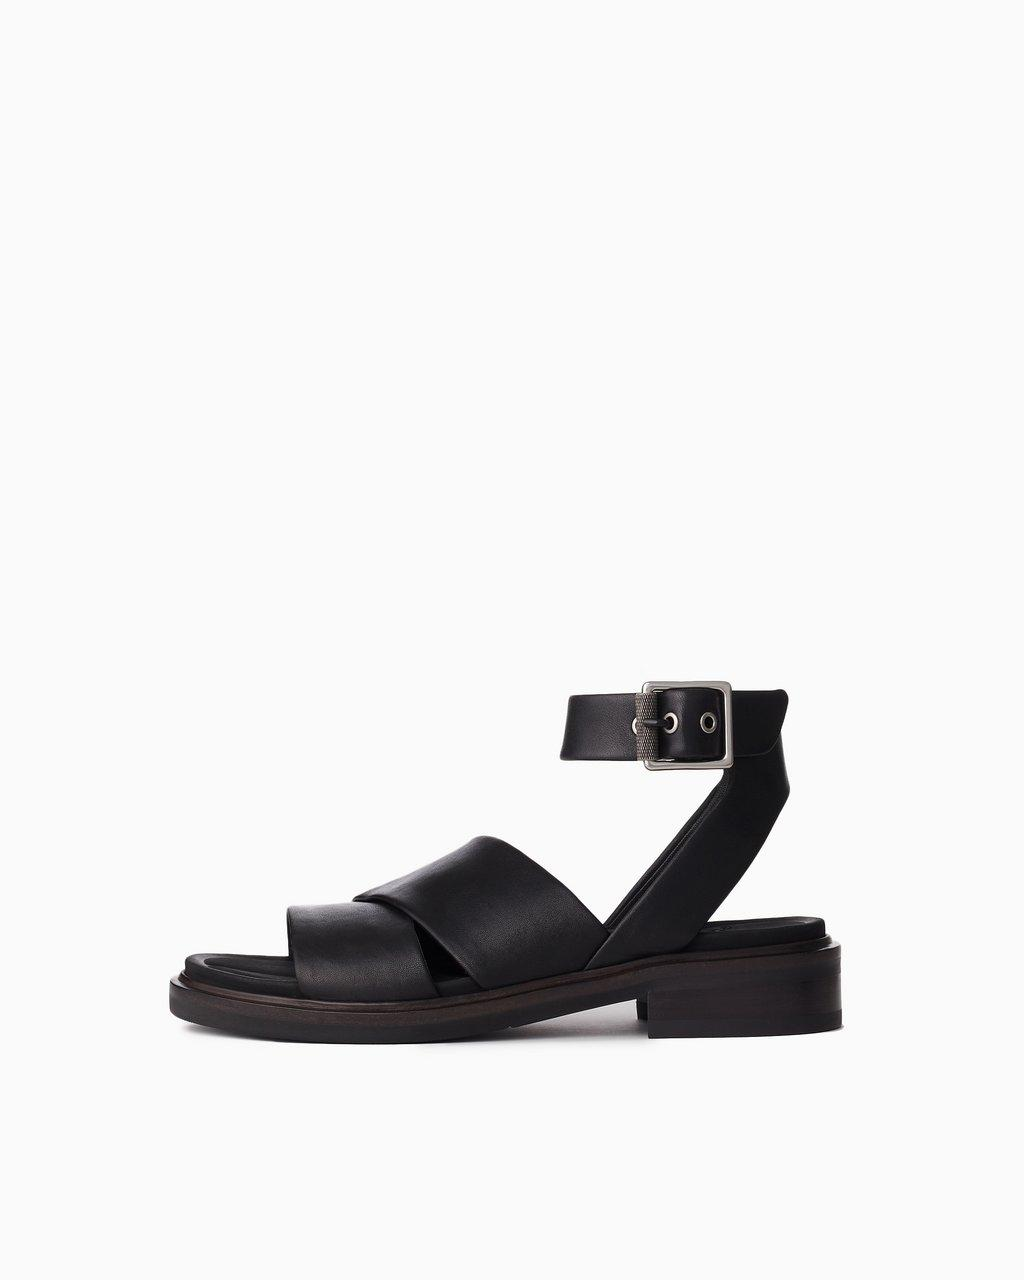 Slayton Sandal - Leather